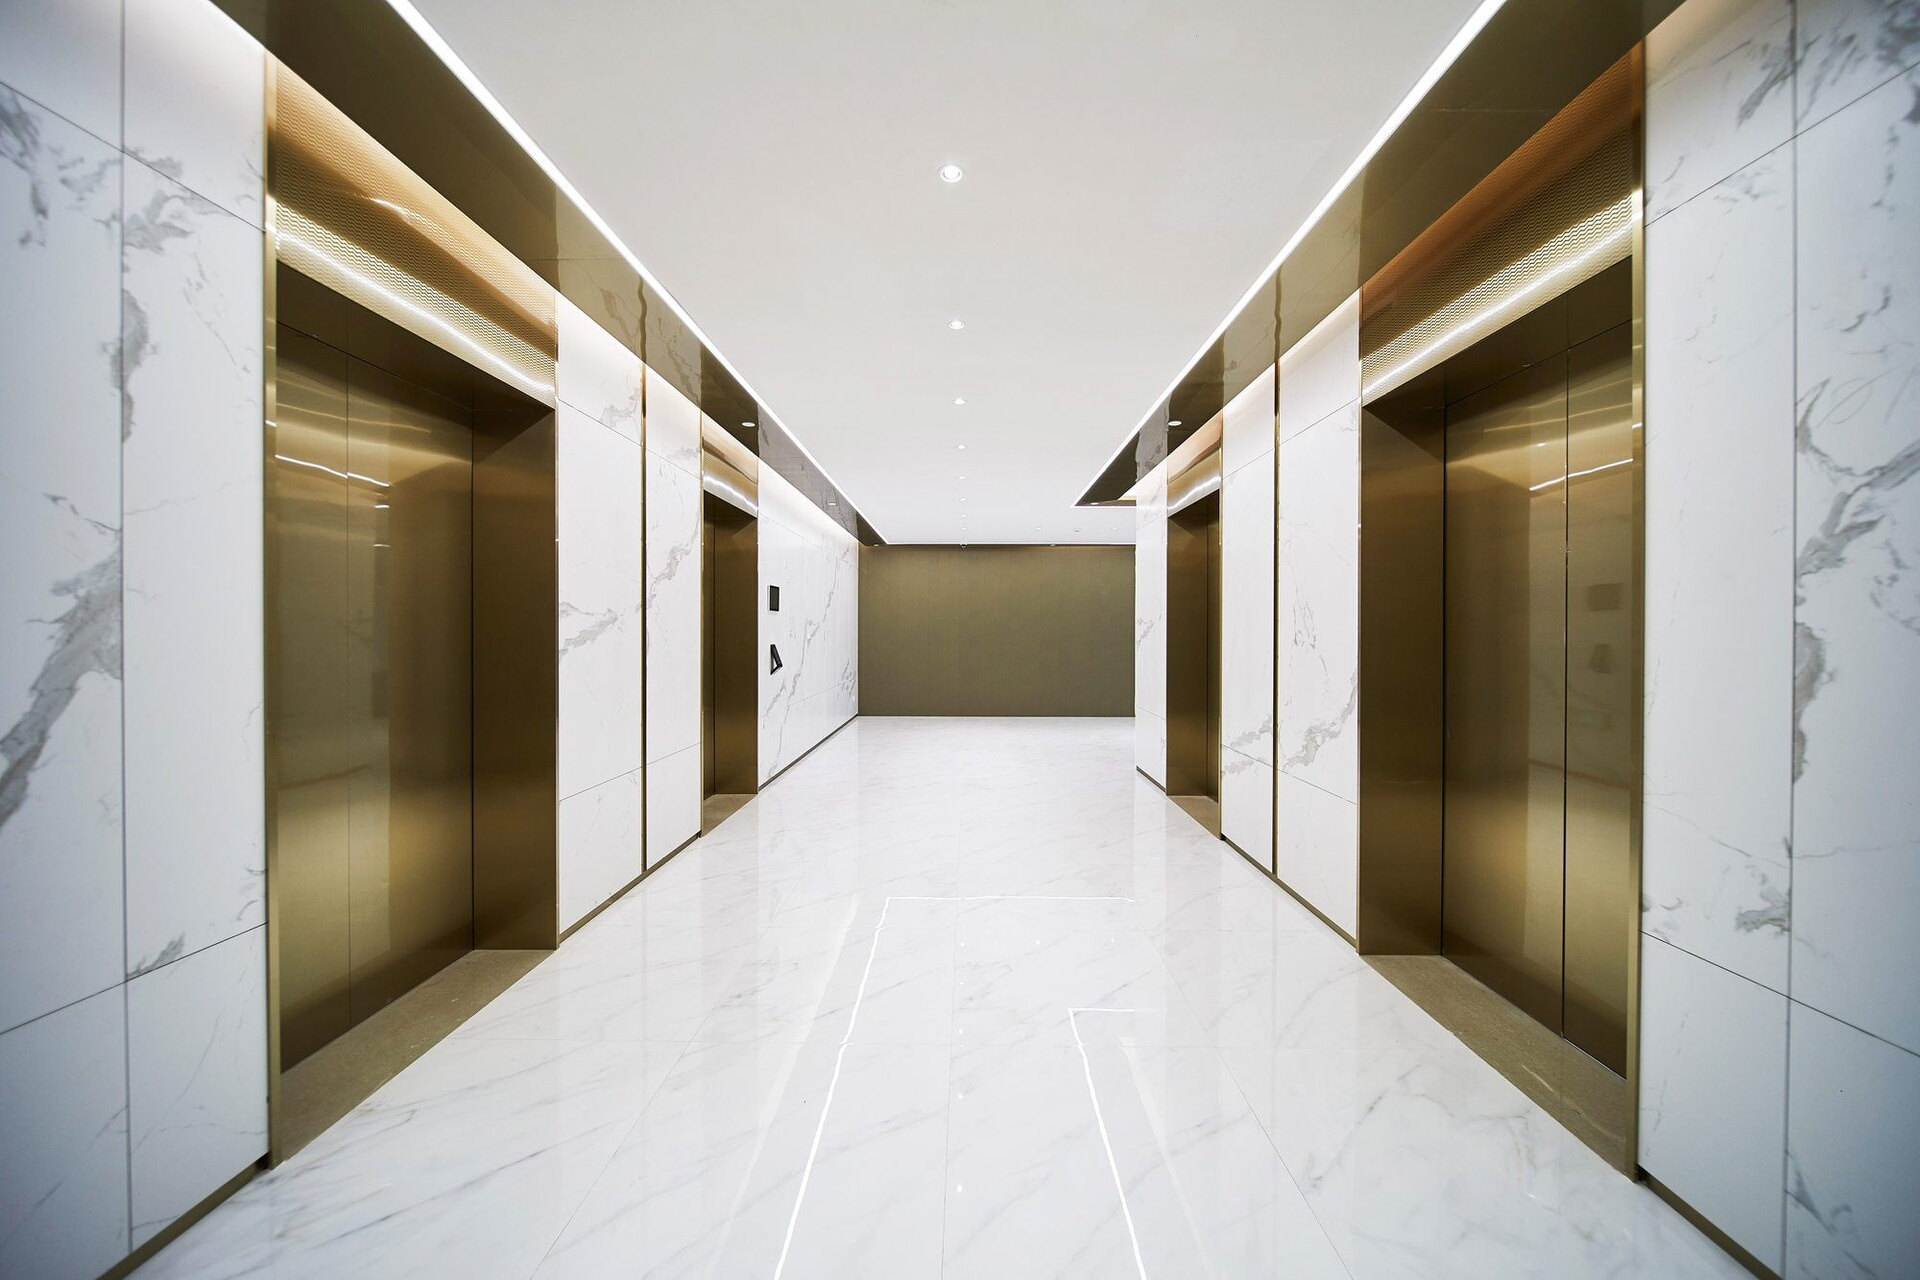 A hallway that has marble walls and gold doors for elevators that can go to different levels.